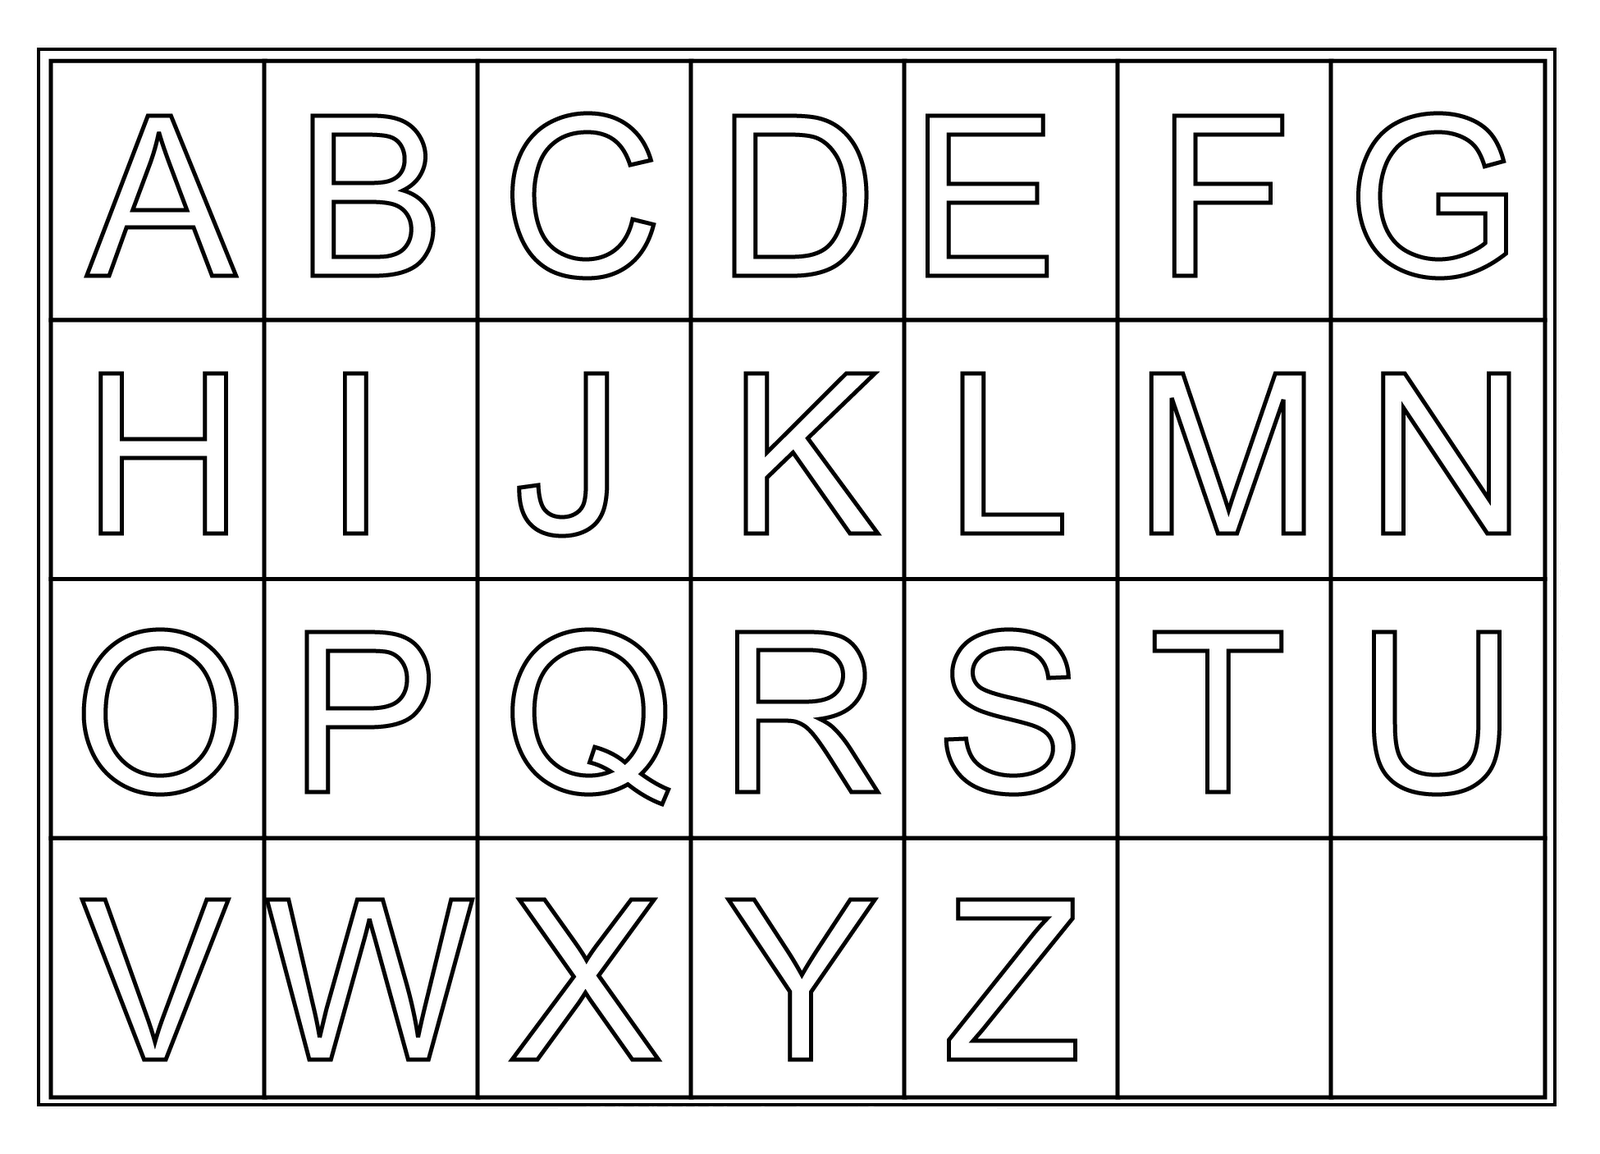 Worksheets On Letters For Preschoolers Printable  Alphabet